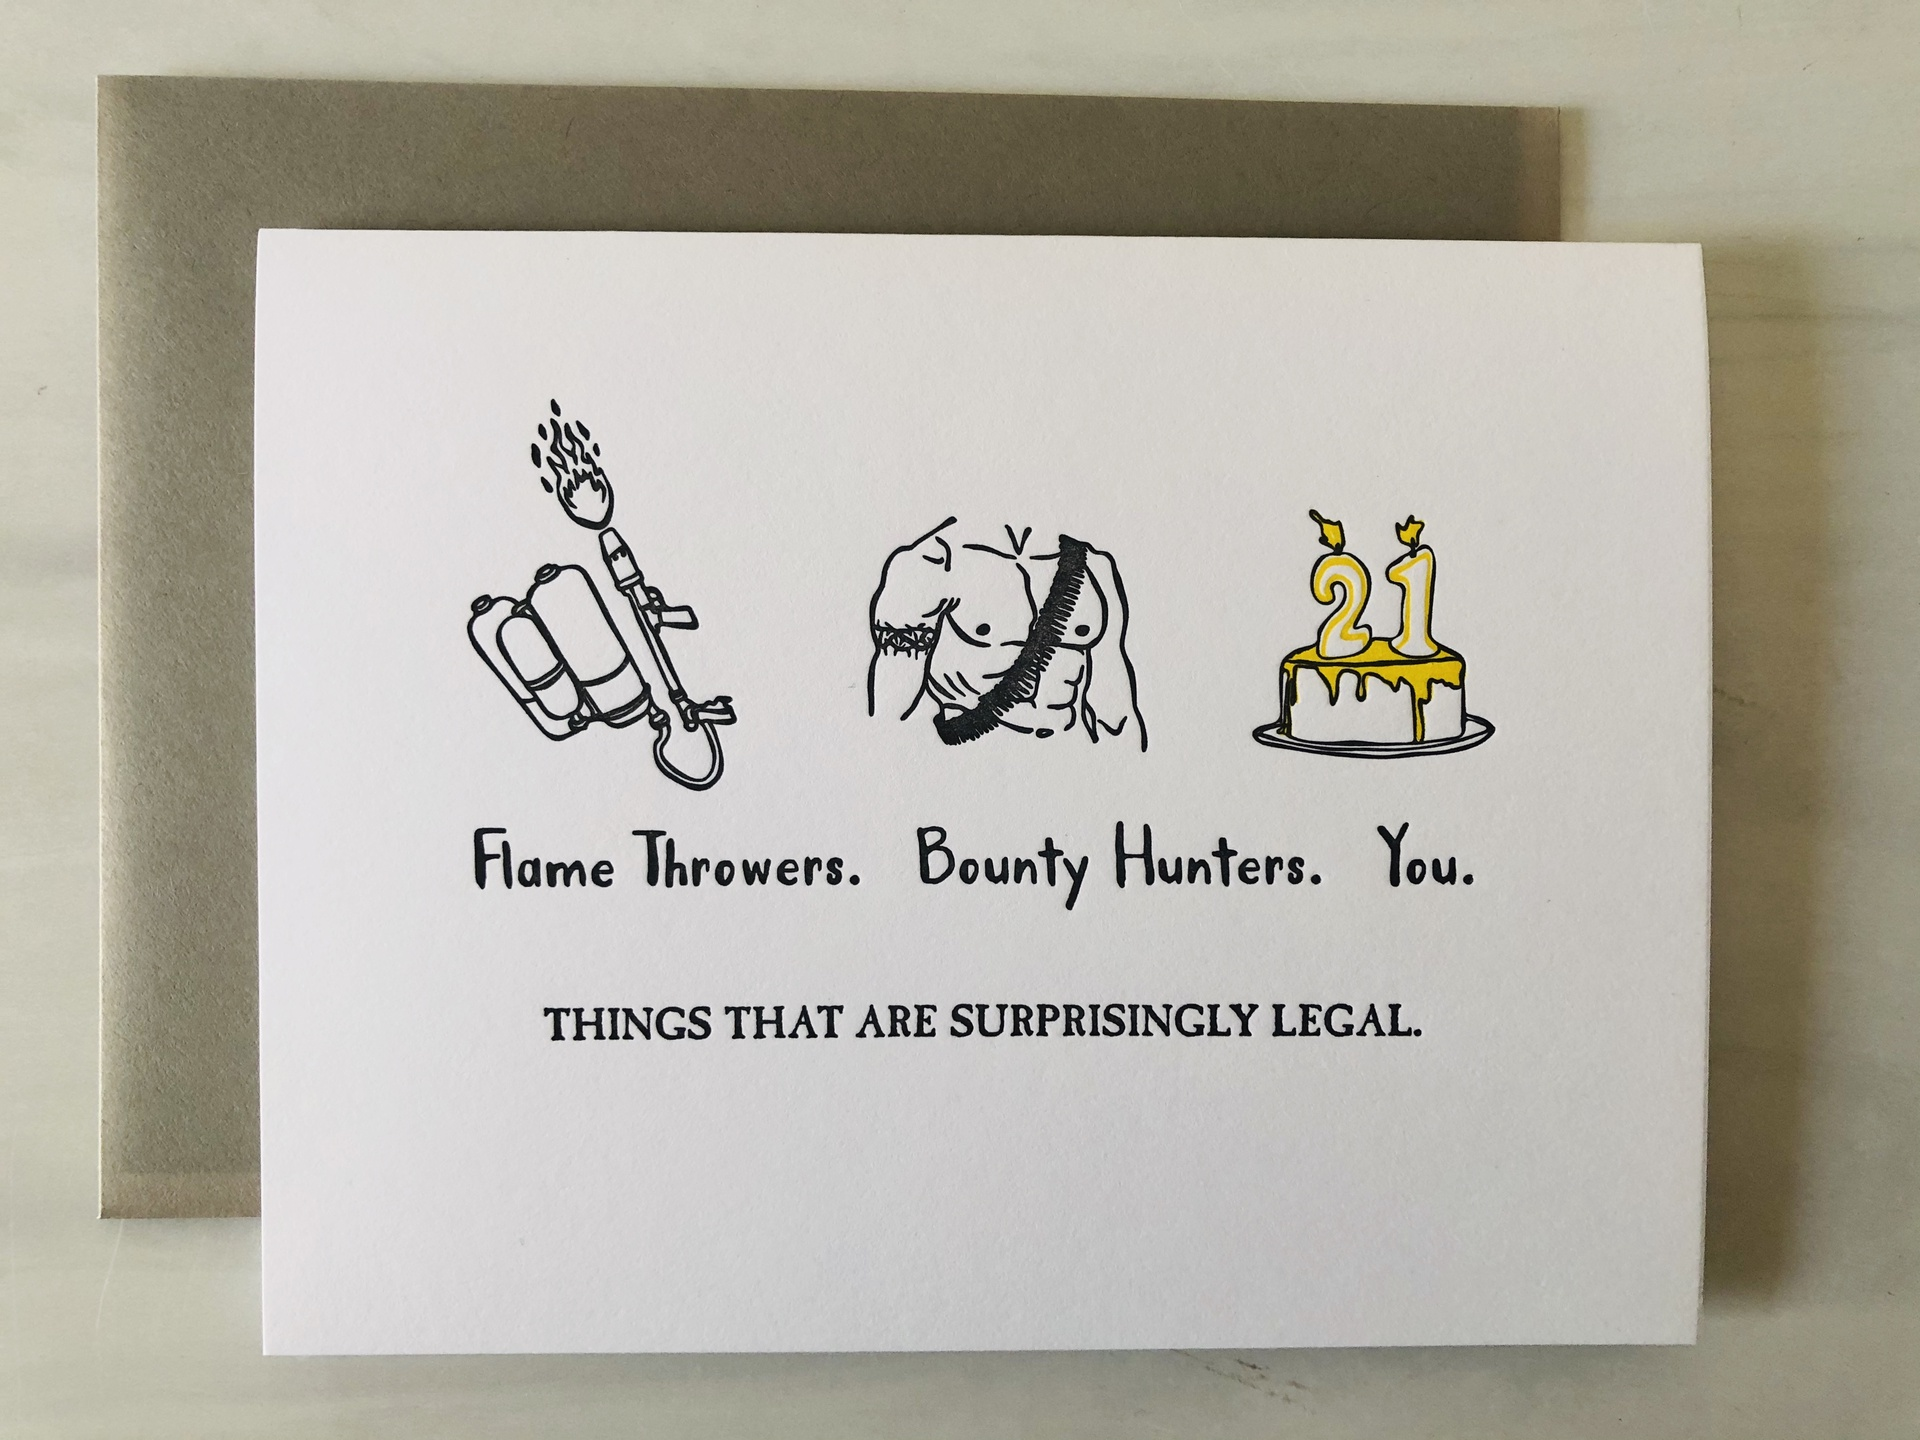 Surprisingly Legal, Blank Greeting Card